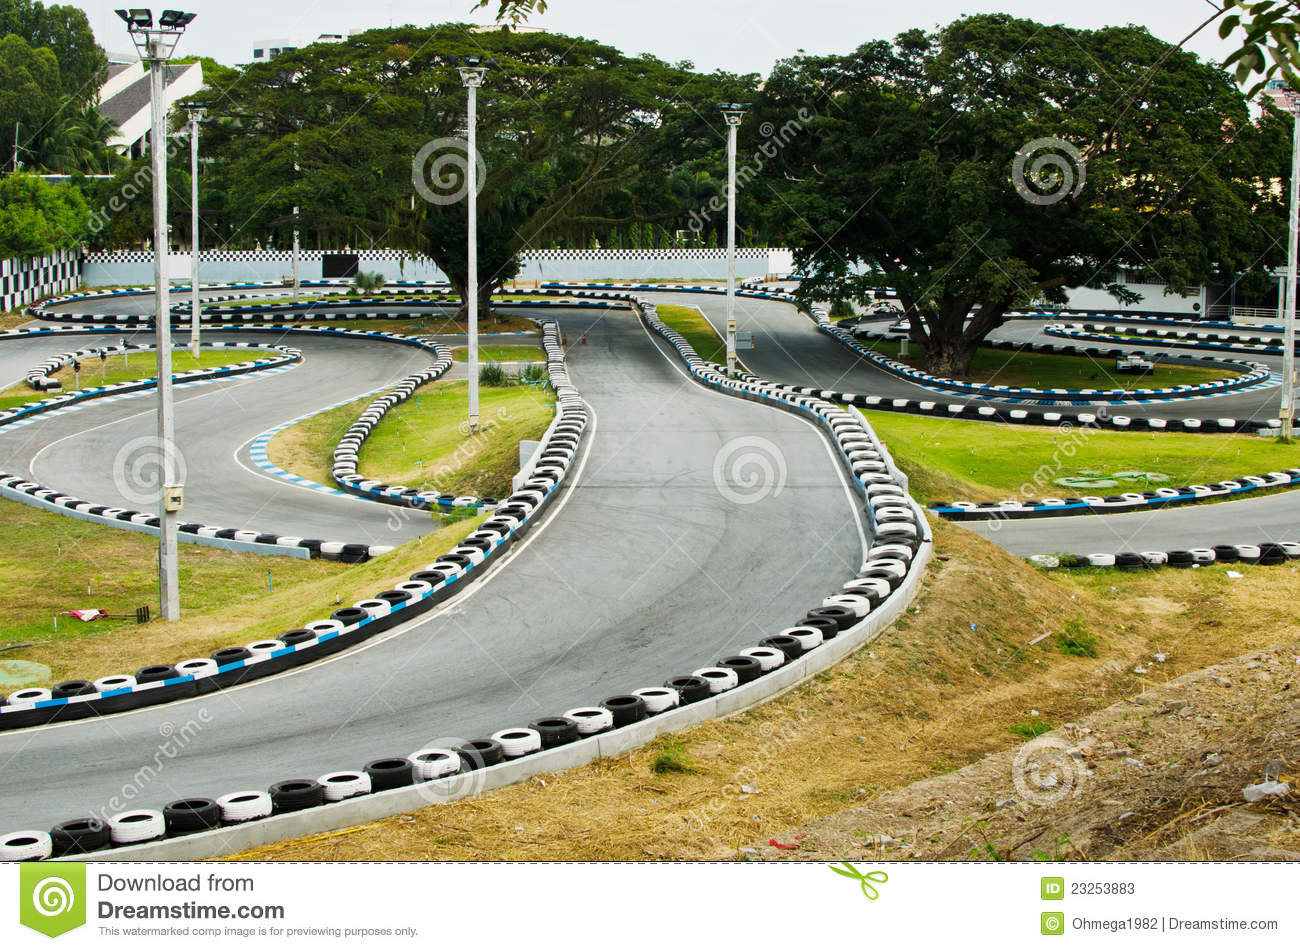 Image for Go Kart race course for speed race.